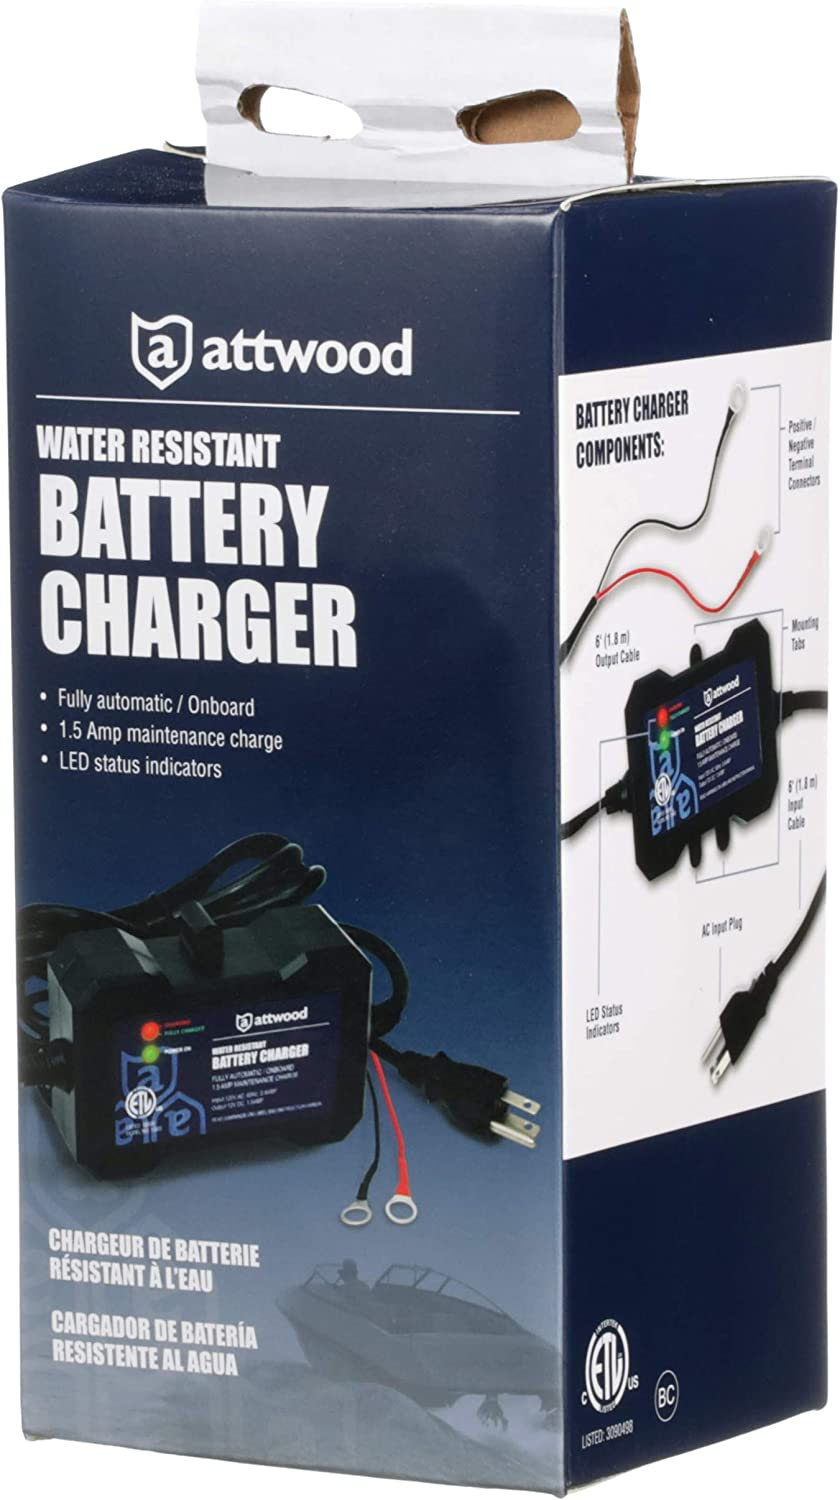 Attwood 11900-4 Battery Charger